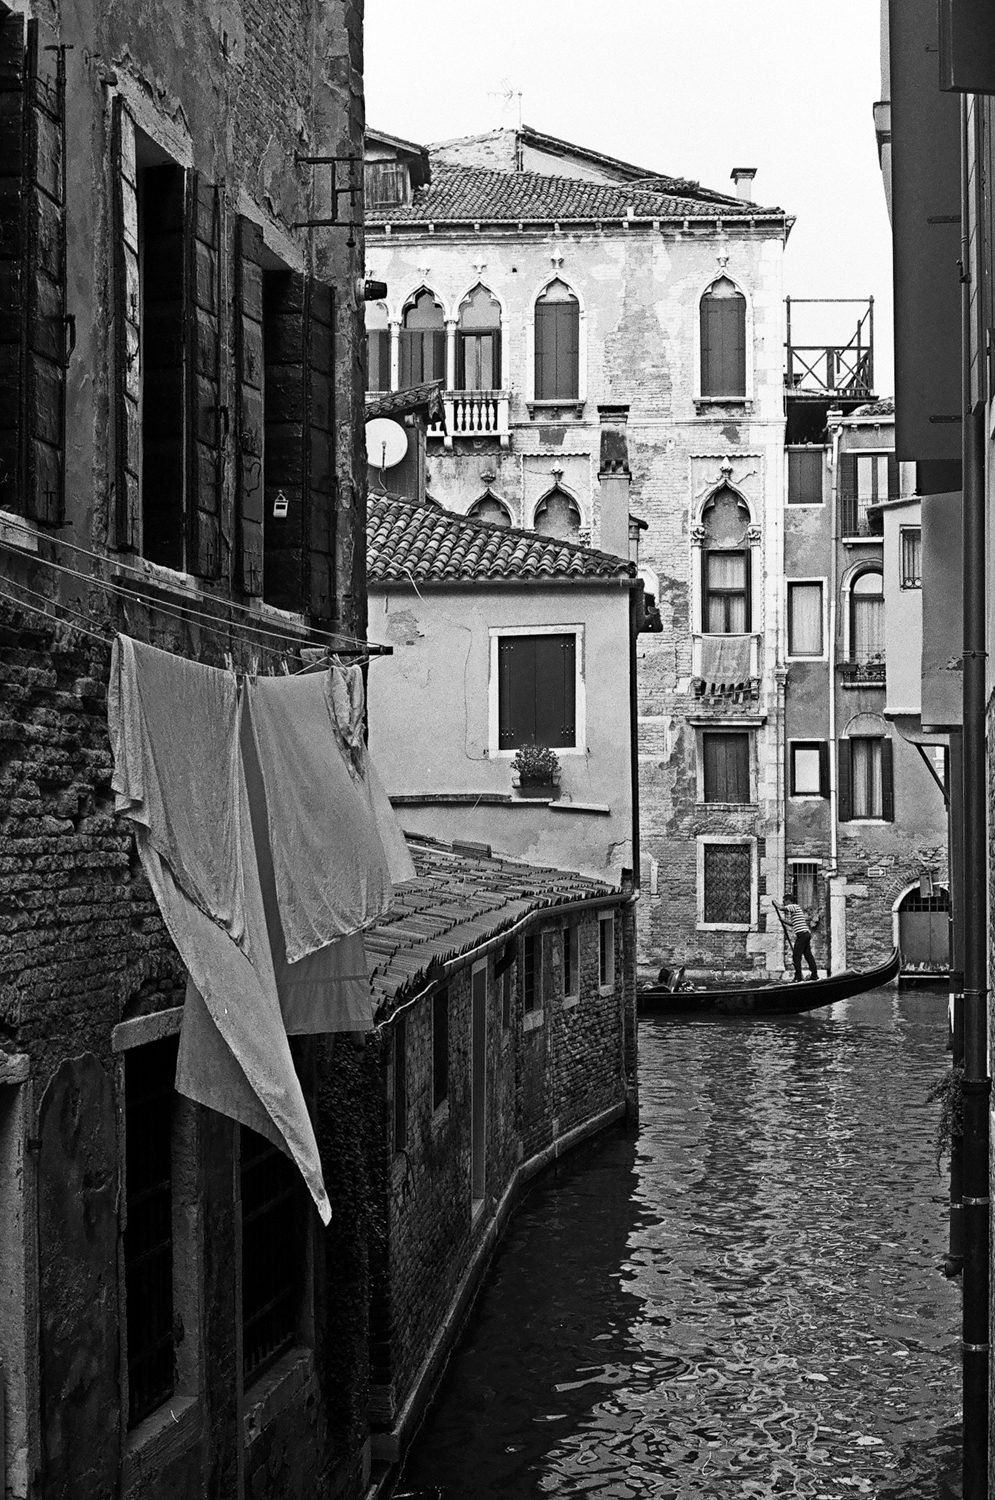 Venice - shot on black and white iILFORD Film by Meredith Schofield